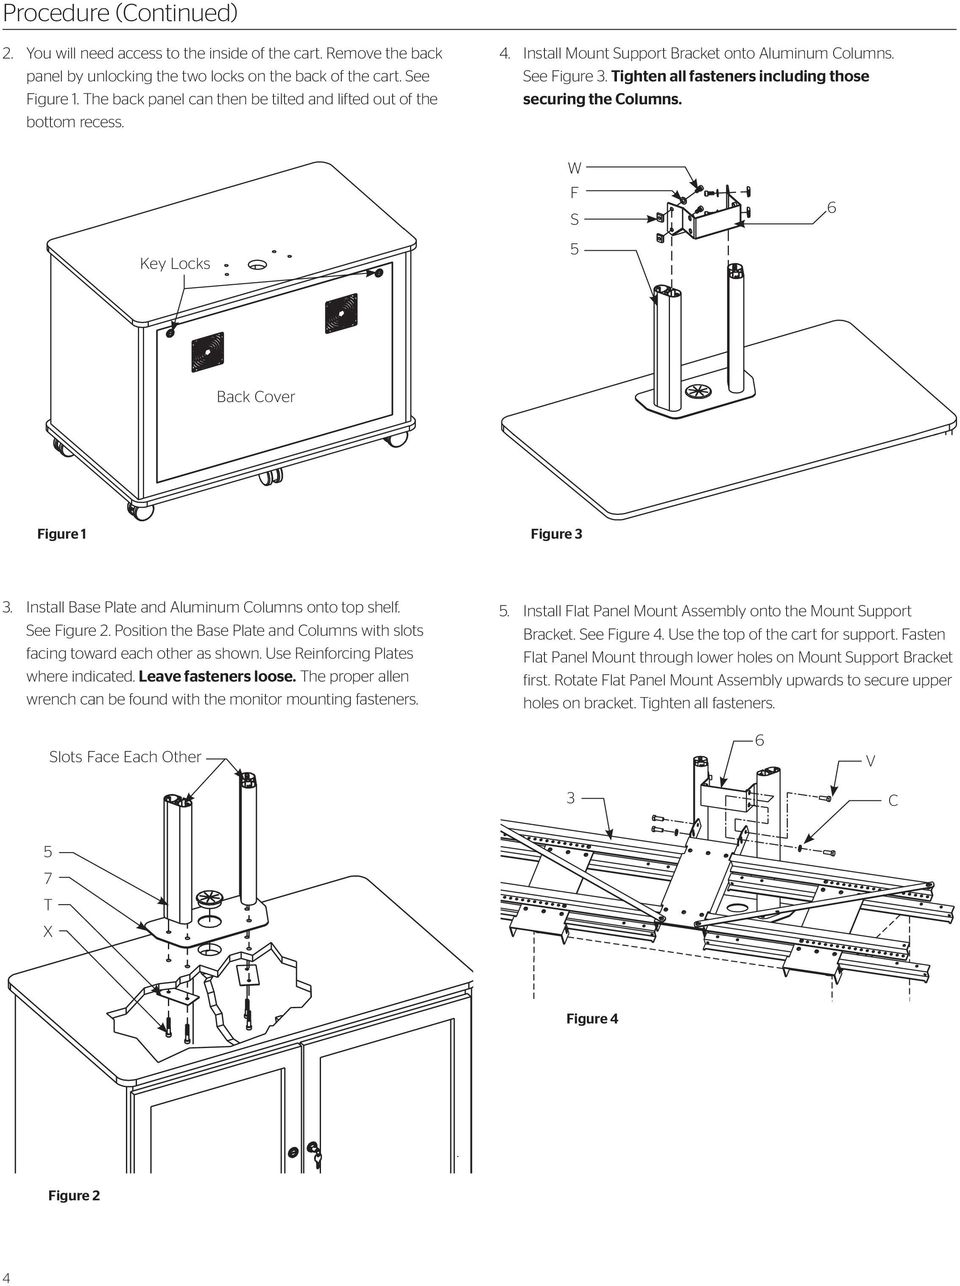 Key Locks F S 6 Back Cover Figure 1 Figure 3 3. Install Base Plate and Aluminum Columns onto top shelf. See Figure. Position the Base Plate and Columns with slots facing toward each other as shown.